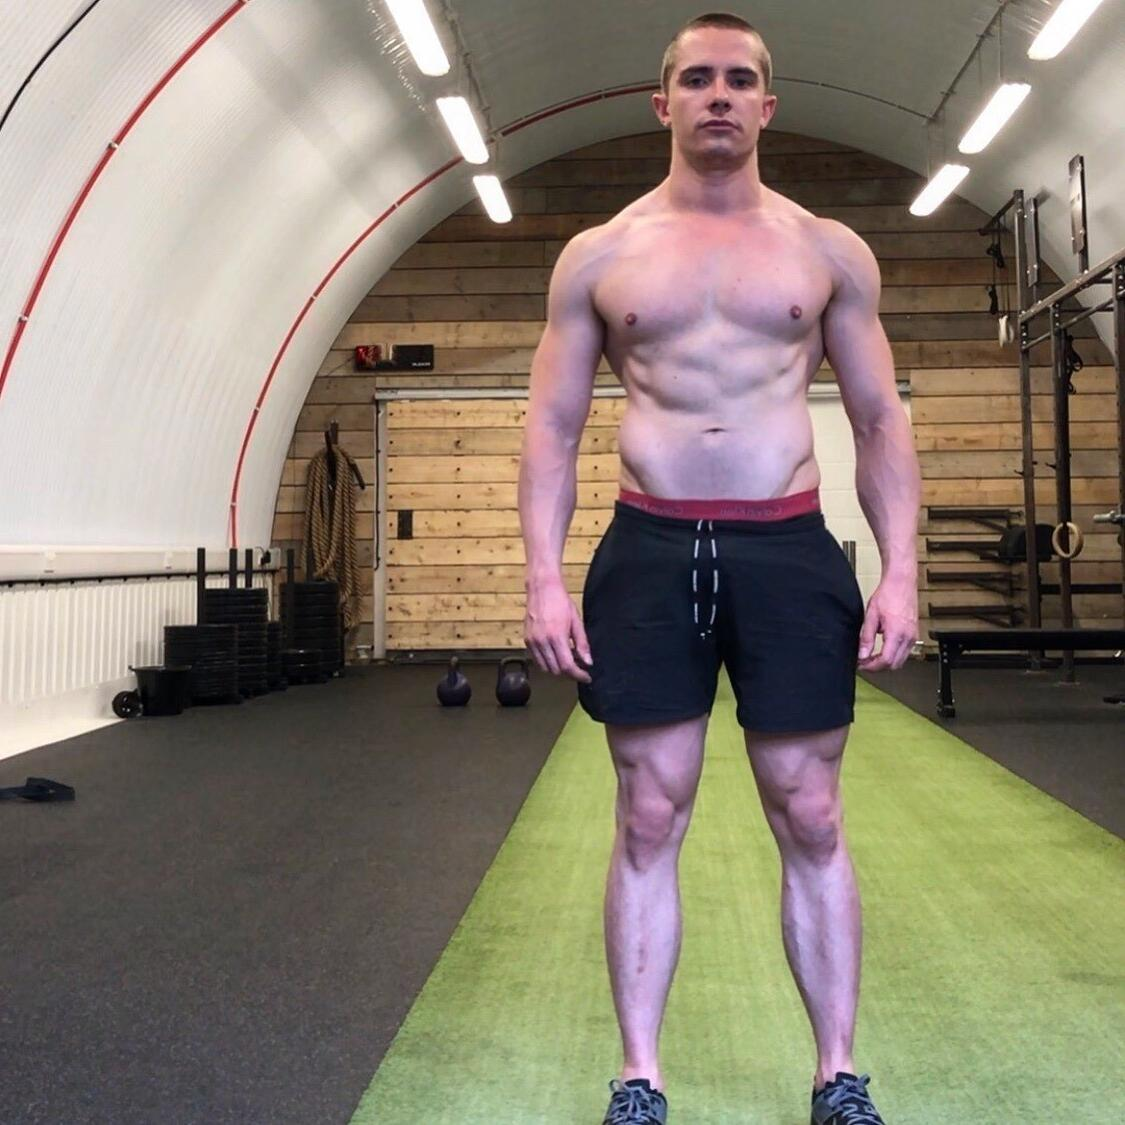 cute-shirtless-young-fit-gym-bro-strong-legs-pictures